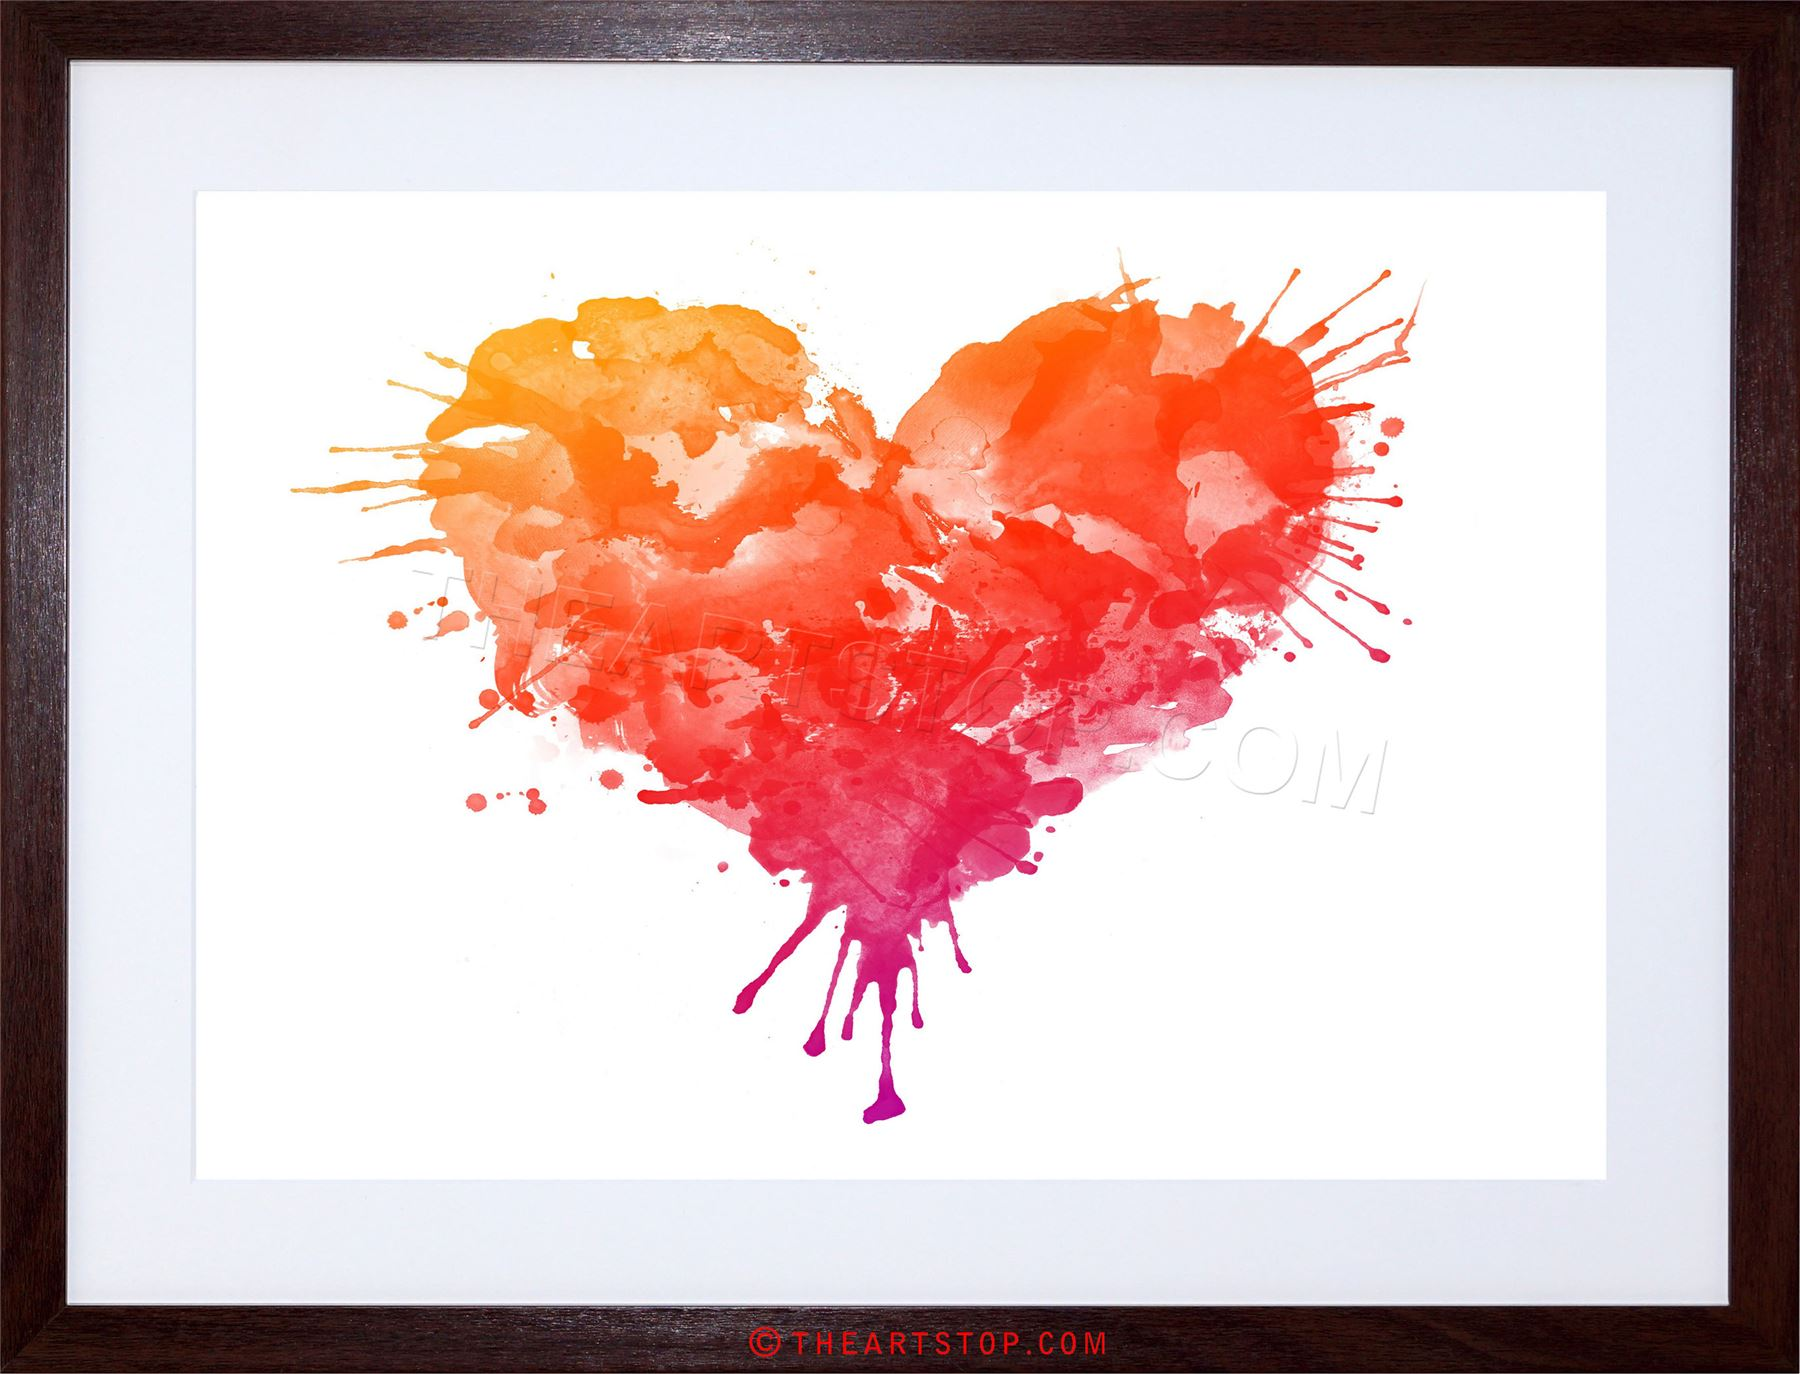 1800x1374 PAINTING DRAWING PAINT SPLASH LOVE HEART STYLE FRAMED PRINT